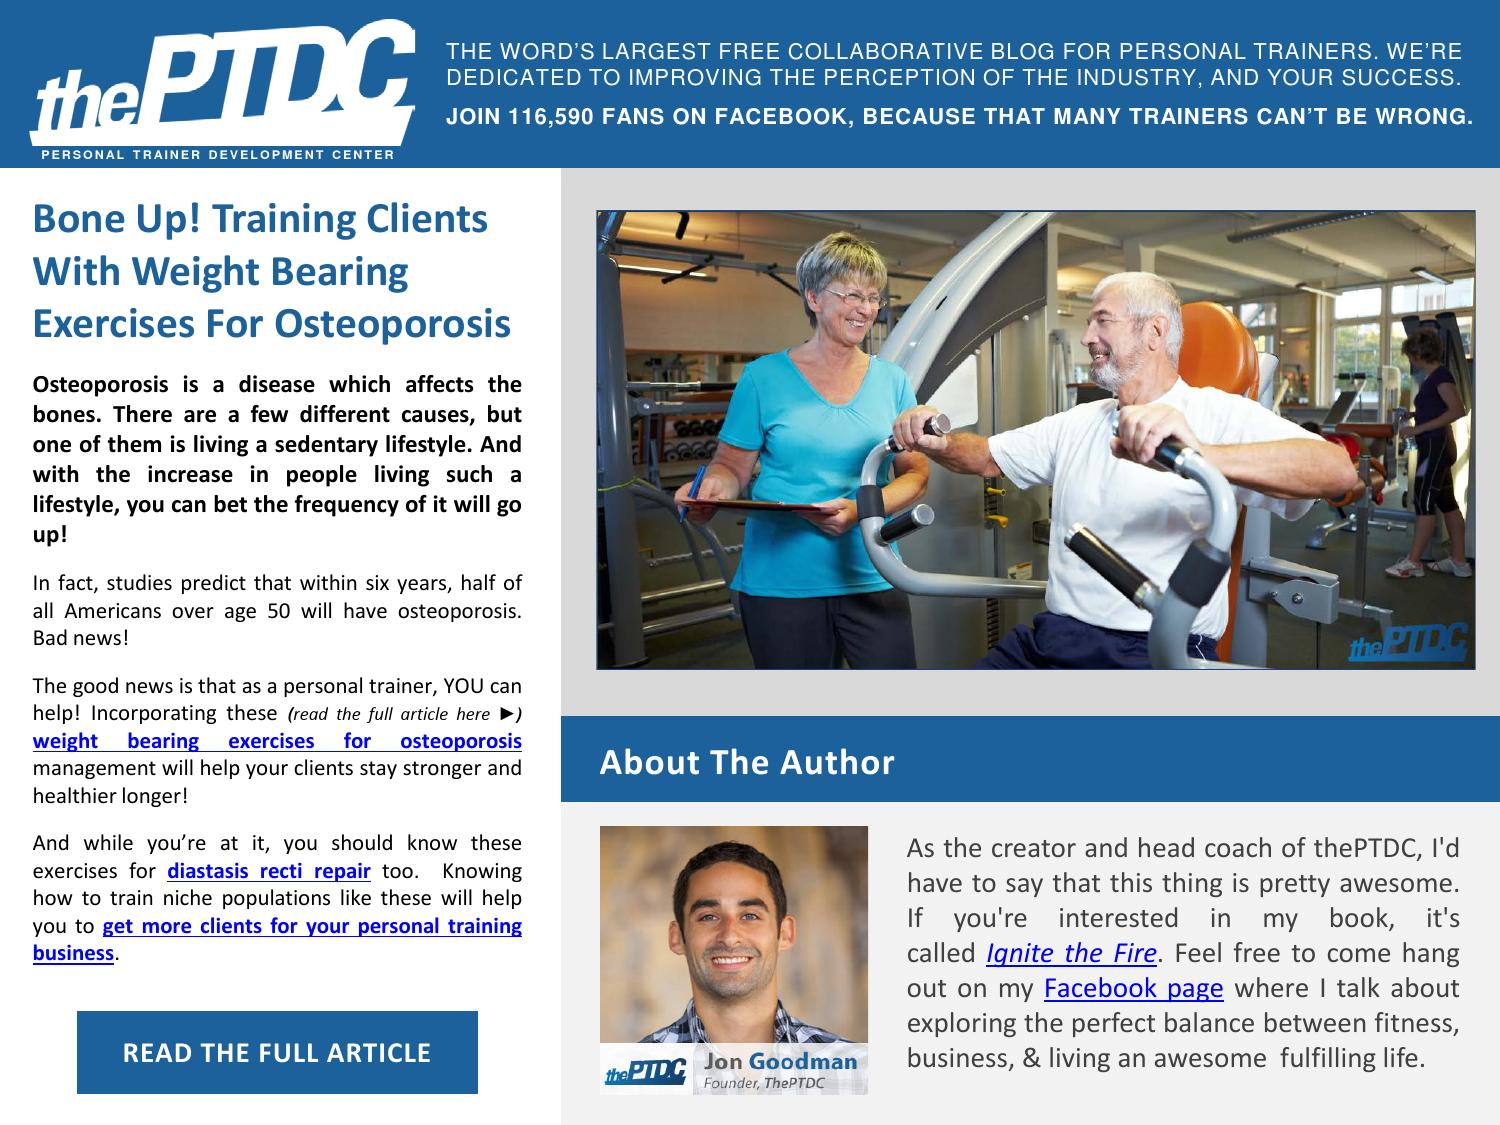 Bone Up! Training Clients with Weight-Bearing Exercises for